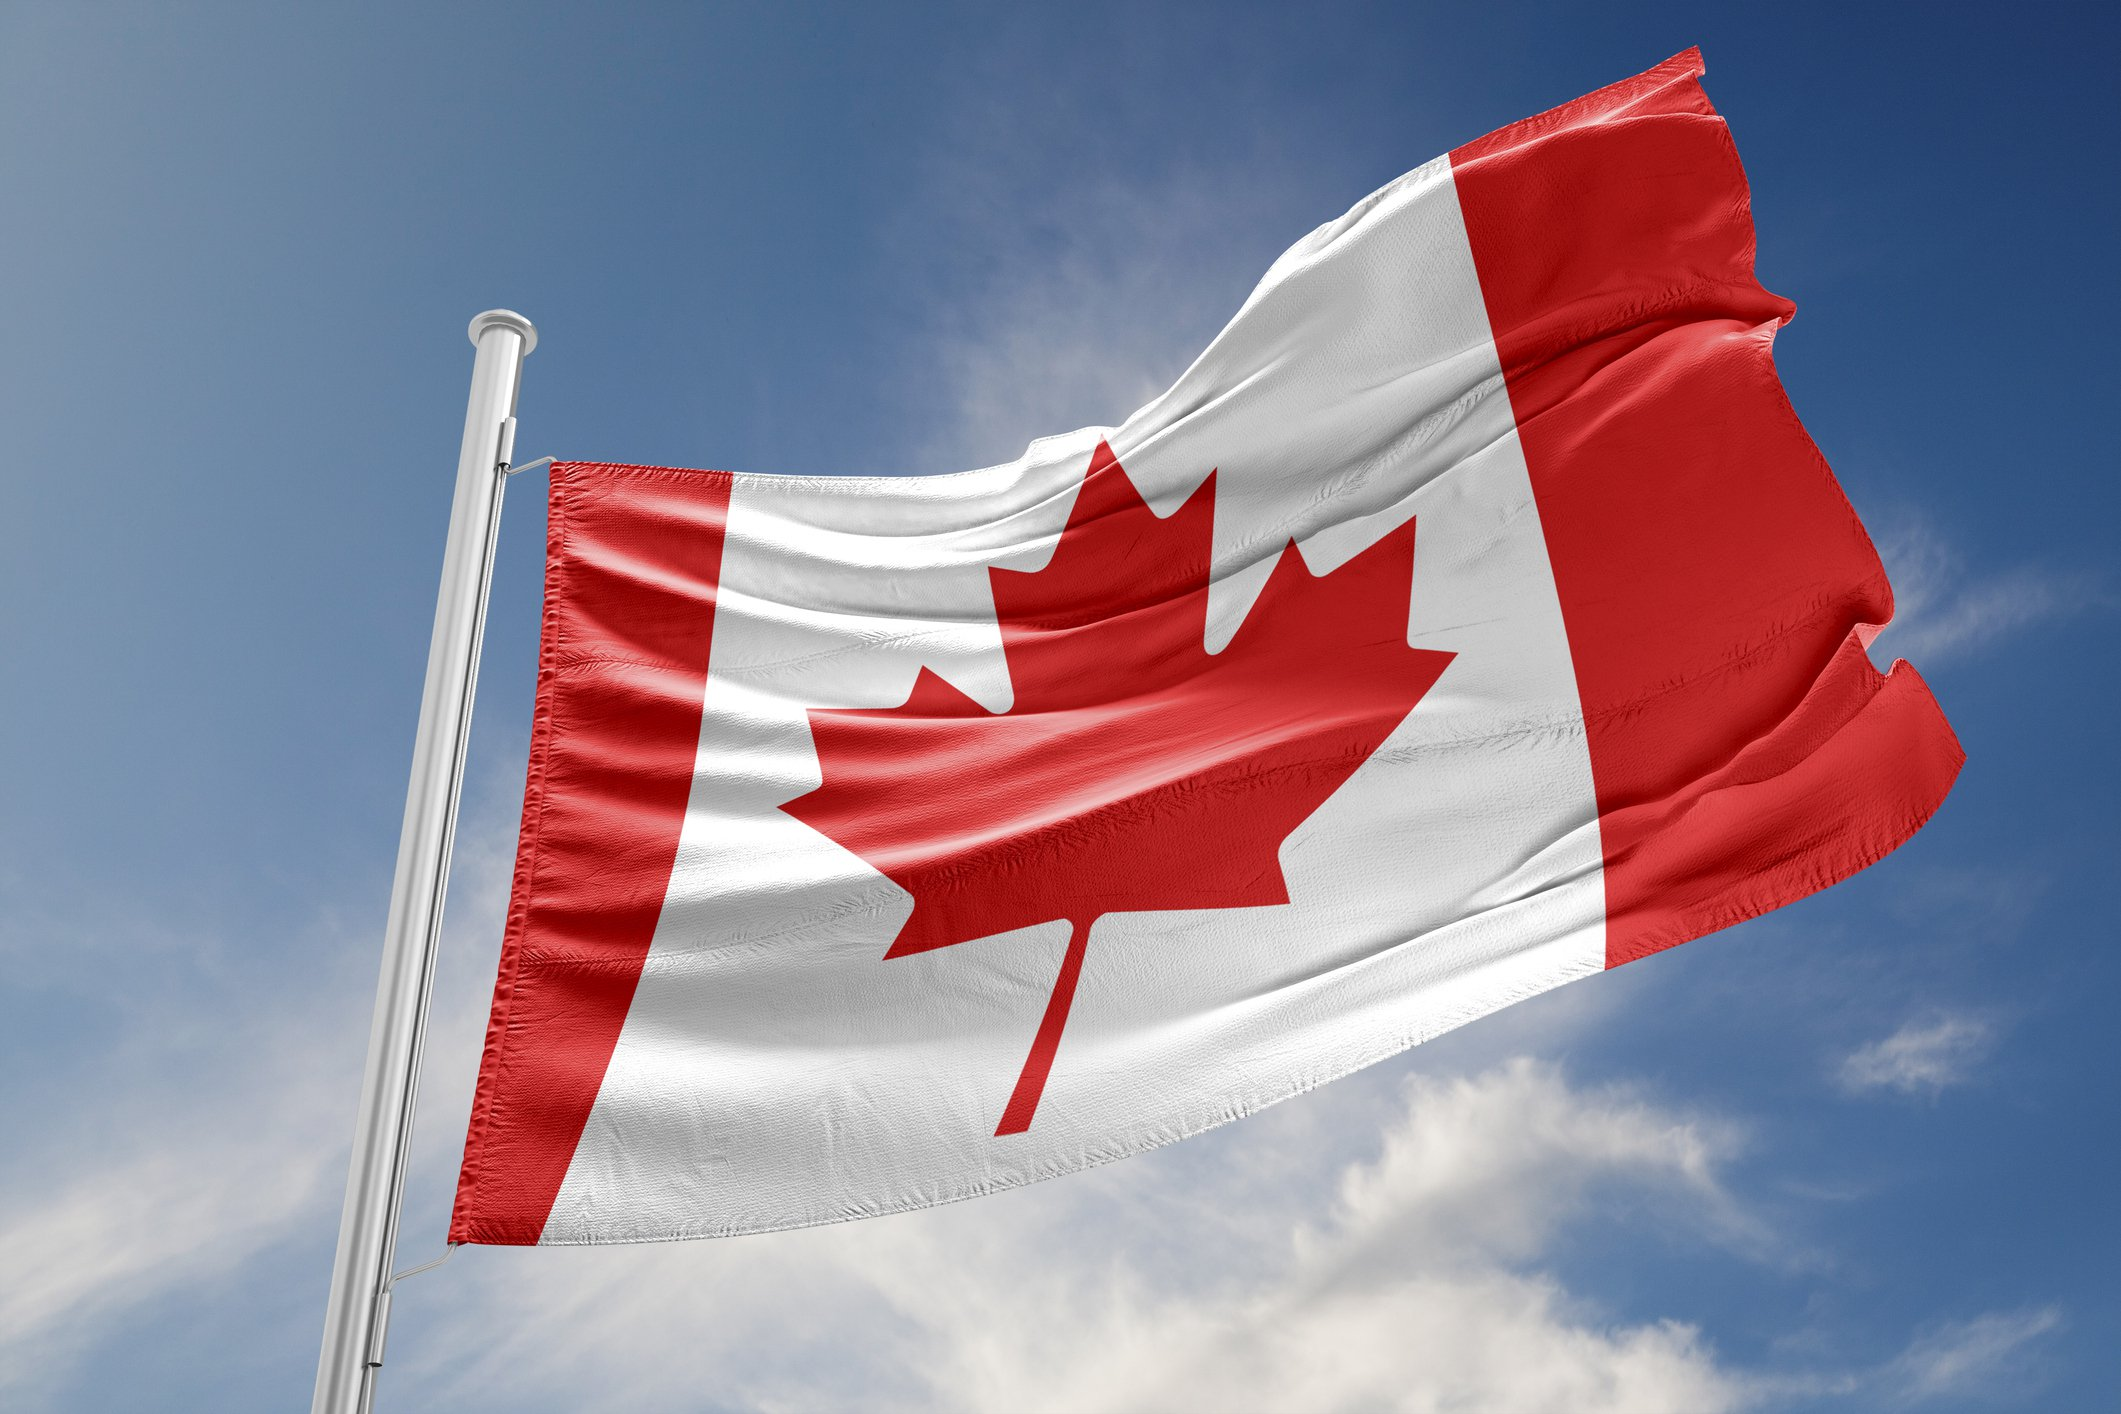 IRCC issued 3,900 ITAs for Canadian permanent residence on November 15.